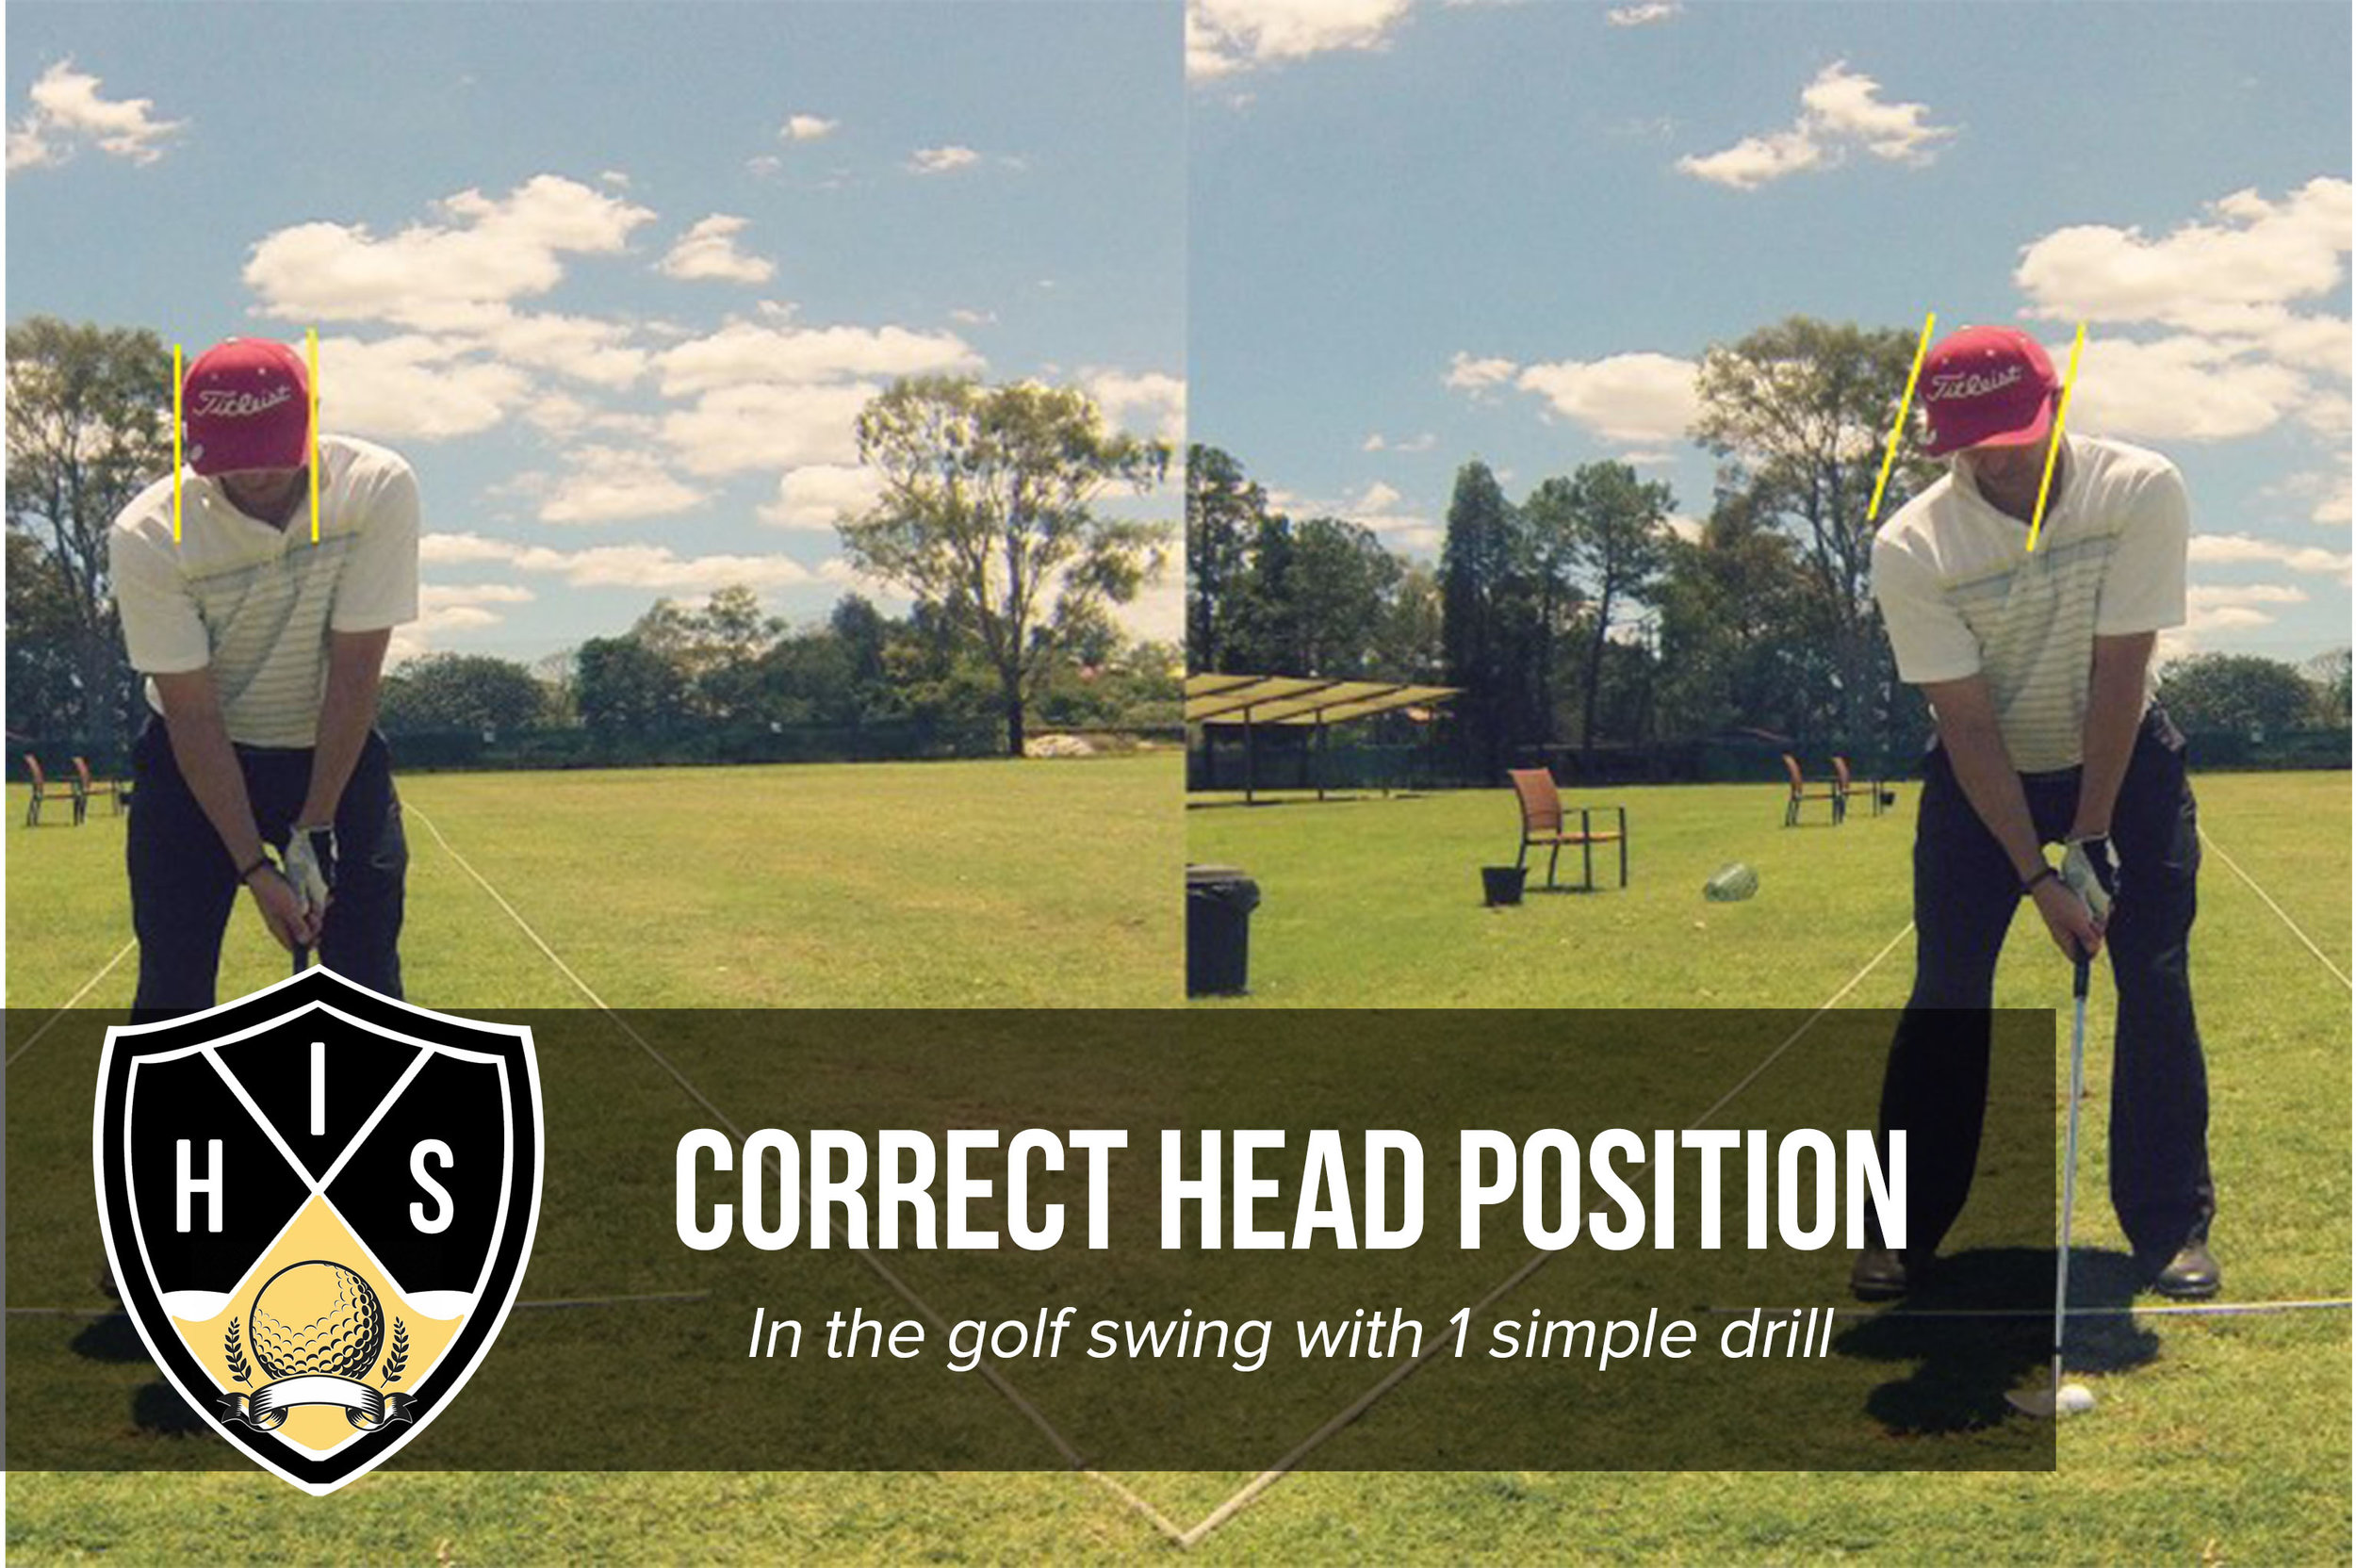 Get The Correct Head Position In The Golf Swing With 1